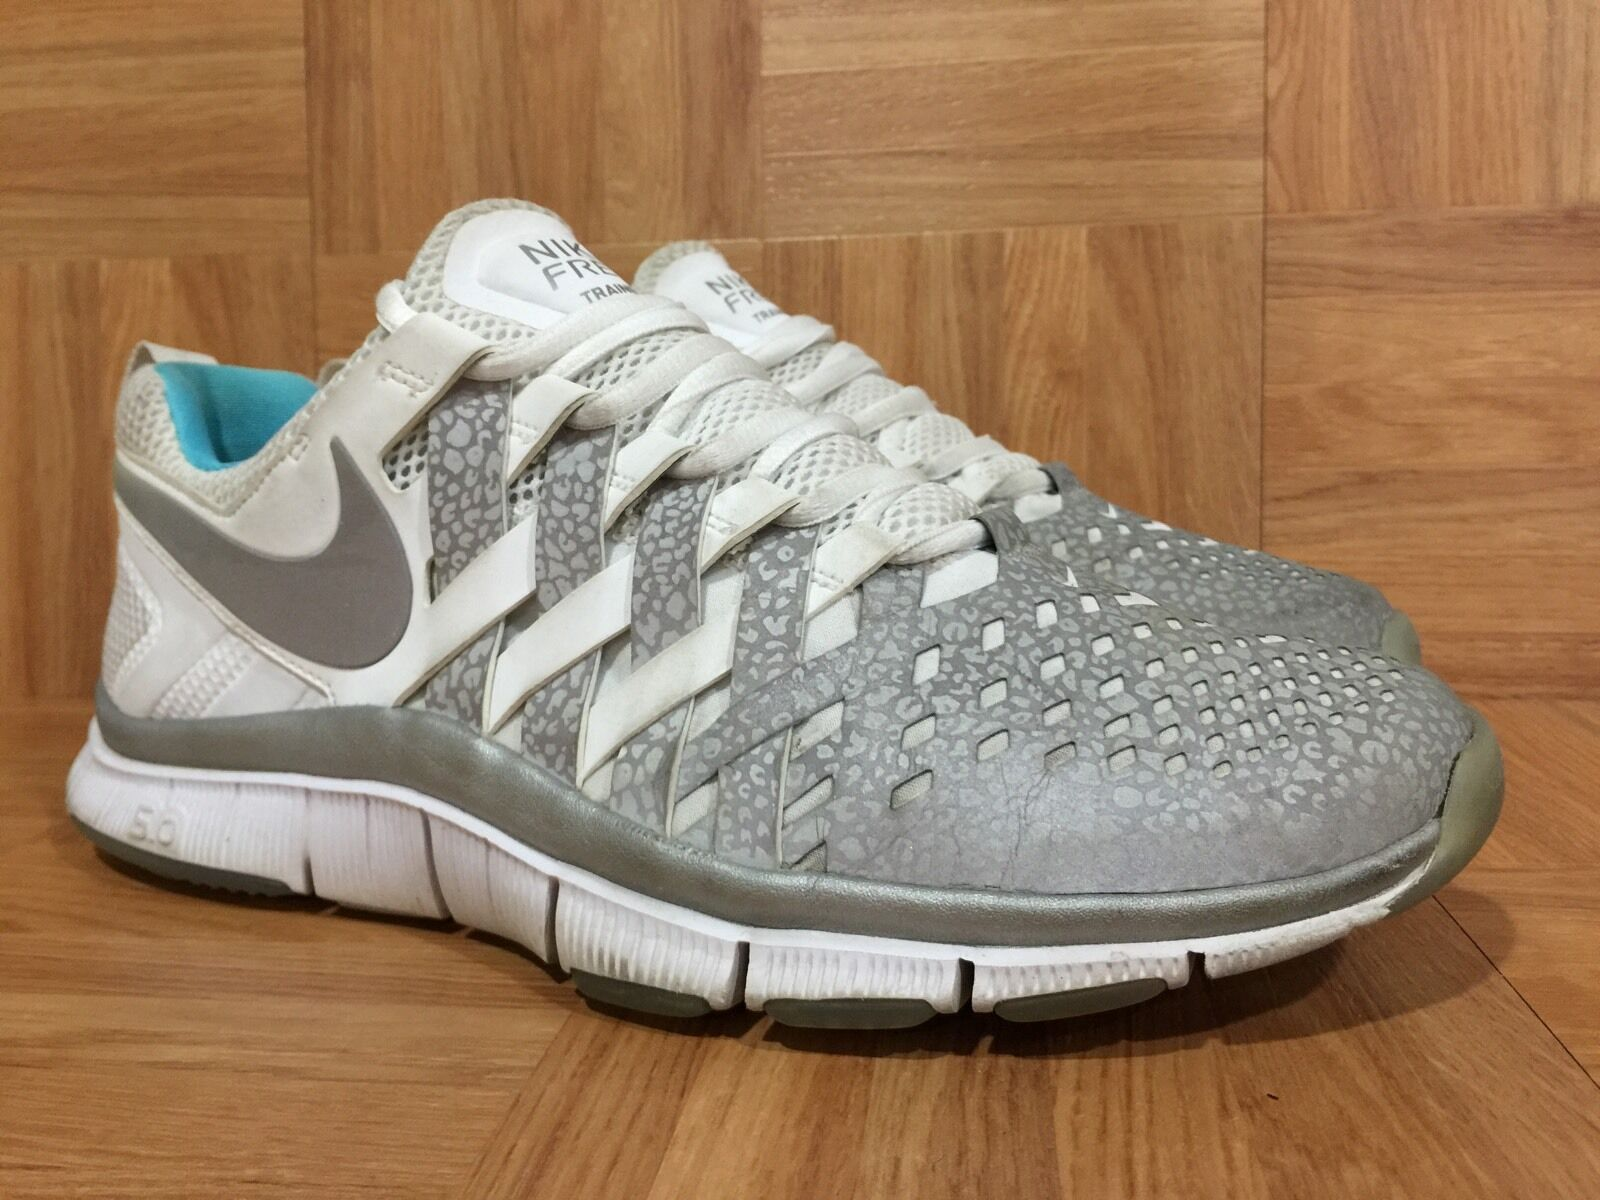 RARE Sample Nike Free Trainer 5.0 V4 Reflective Silver Gamma bluee Ice McFly 10